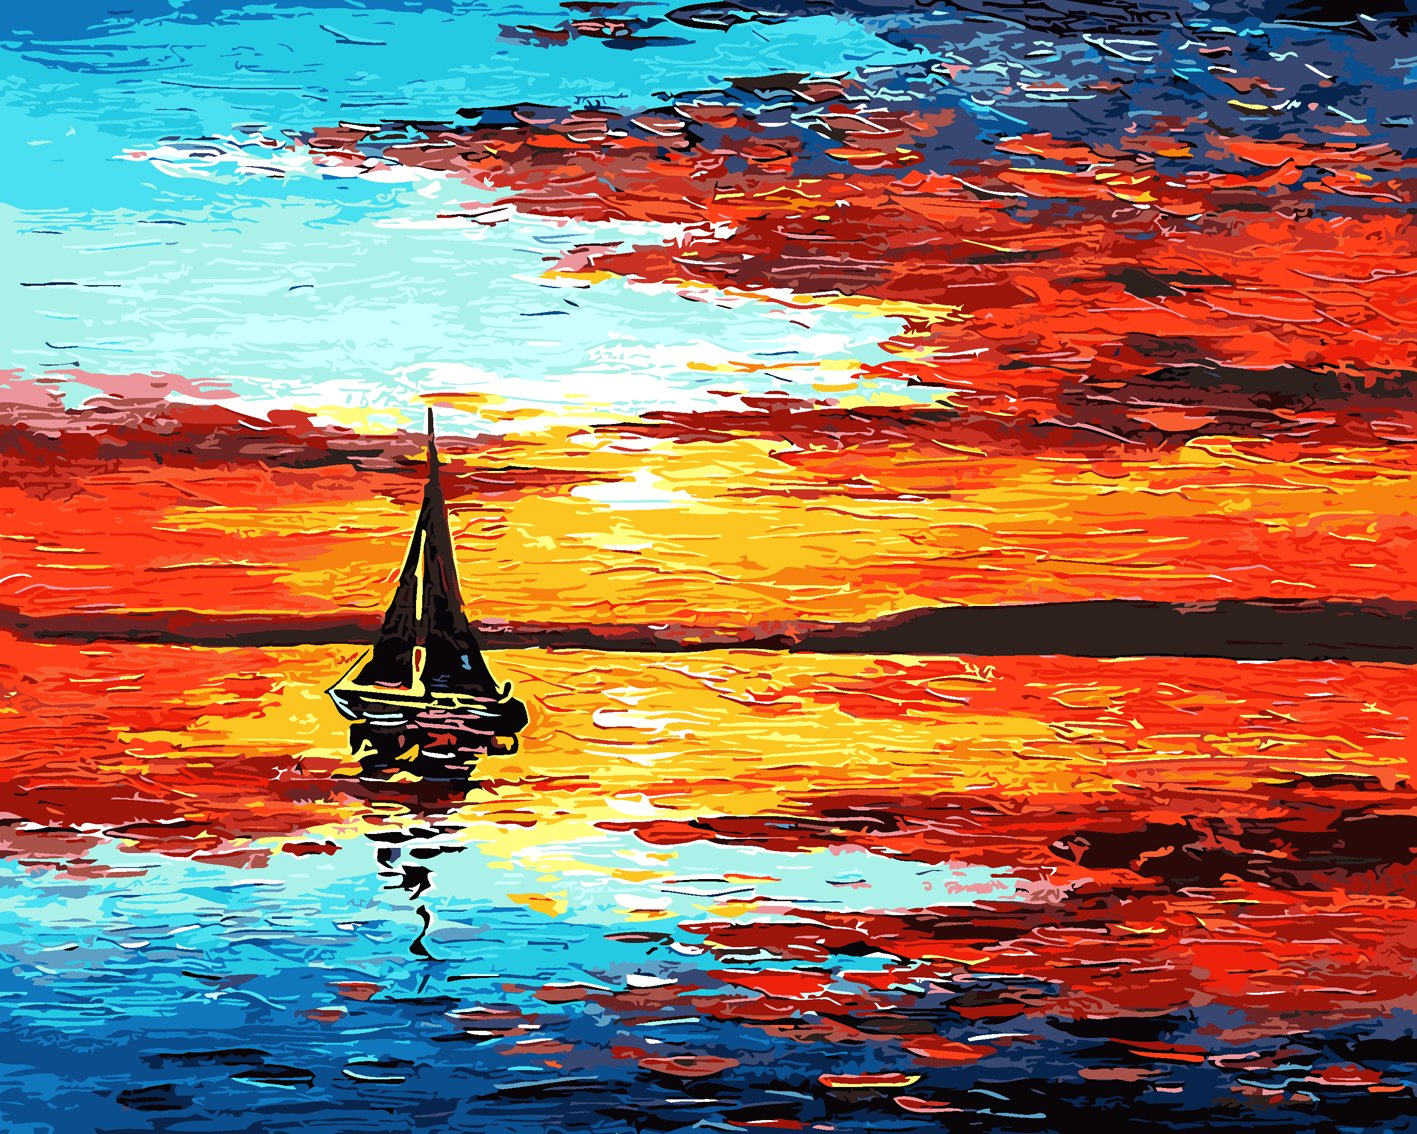 Rihe Paint by Numbers Kits Diy Oil Painting for Adults Kids Beginner - Sunset 16 x 20 inch with Brushes and Acrylic Pigment (Without Frame)